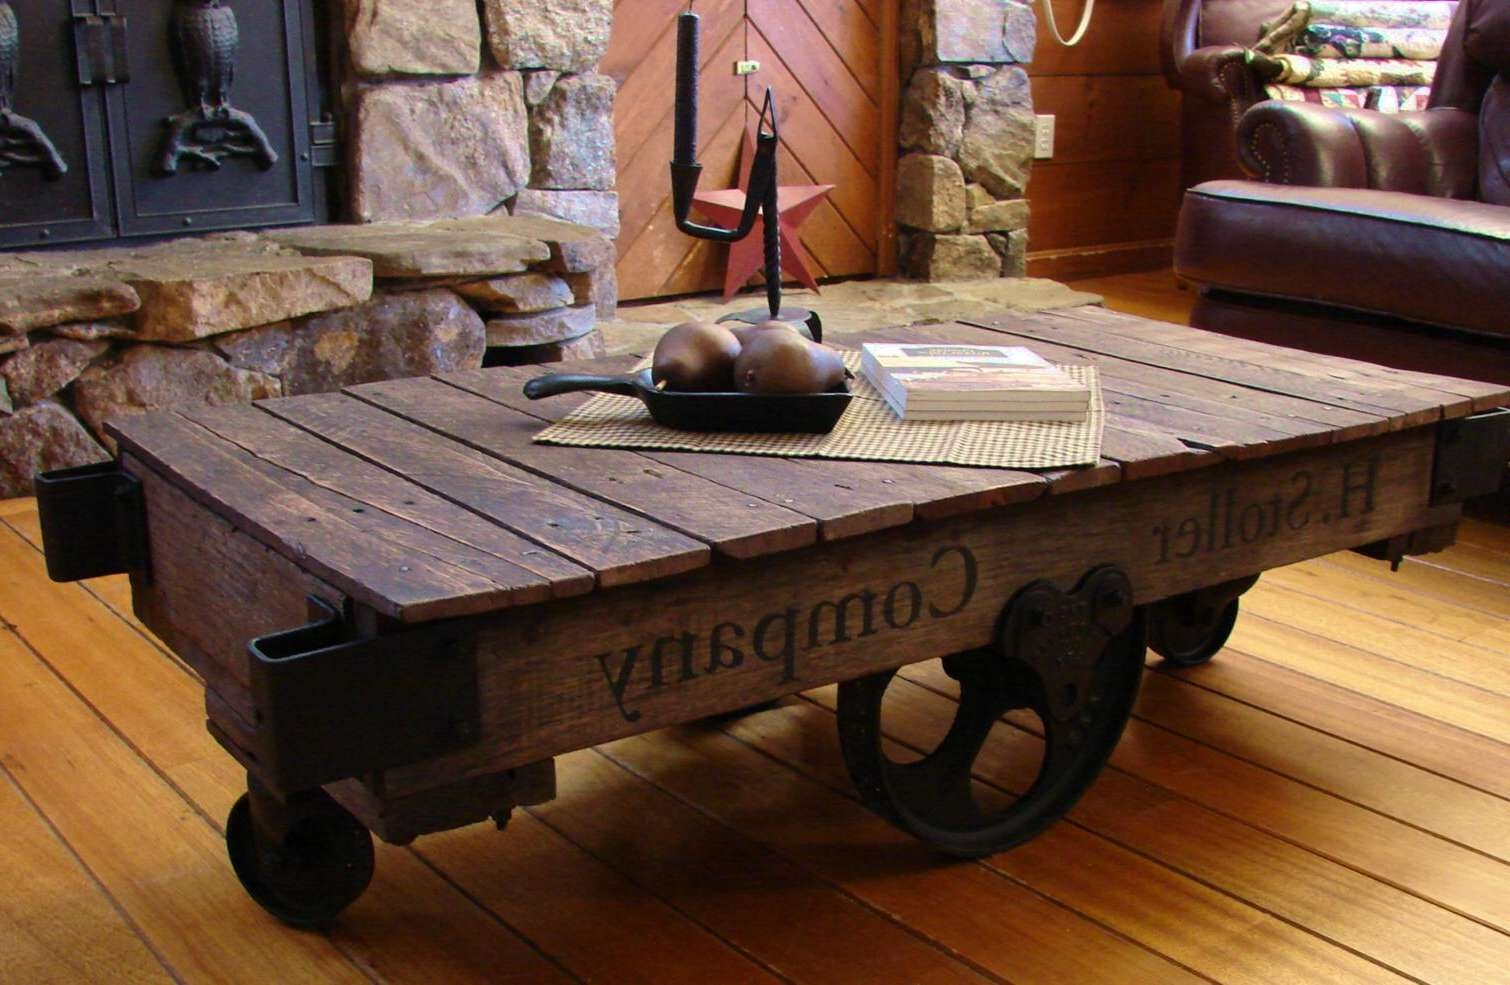 Homesfeed Regarding Most Up To Date Rustic Coffee Table With Wheels (View 9 of 20)